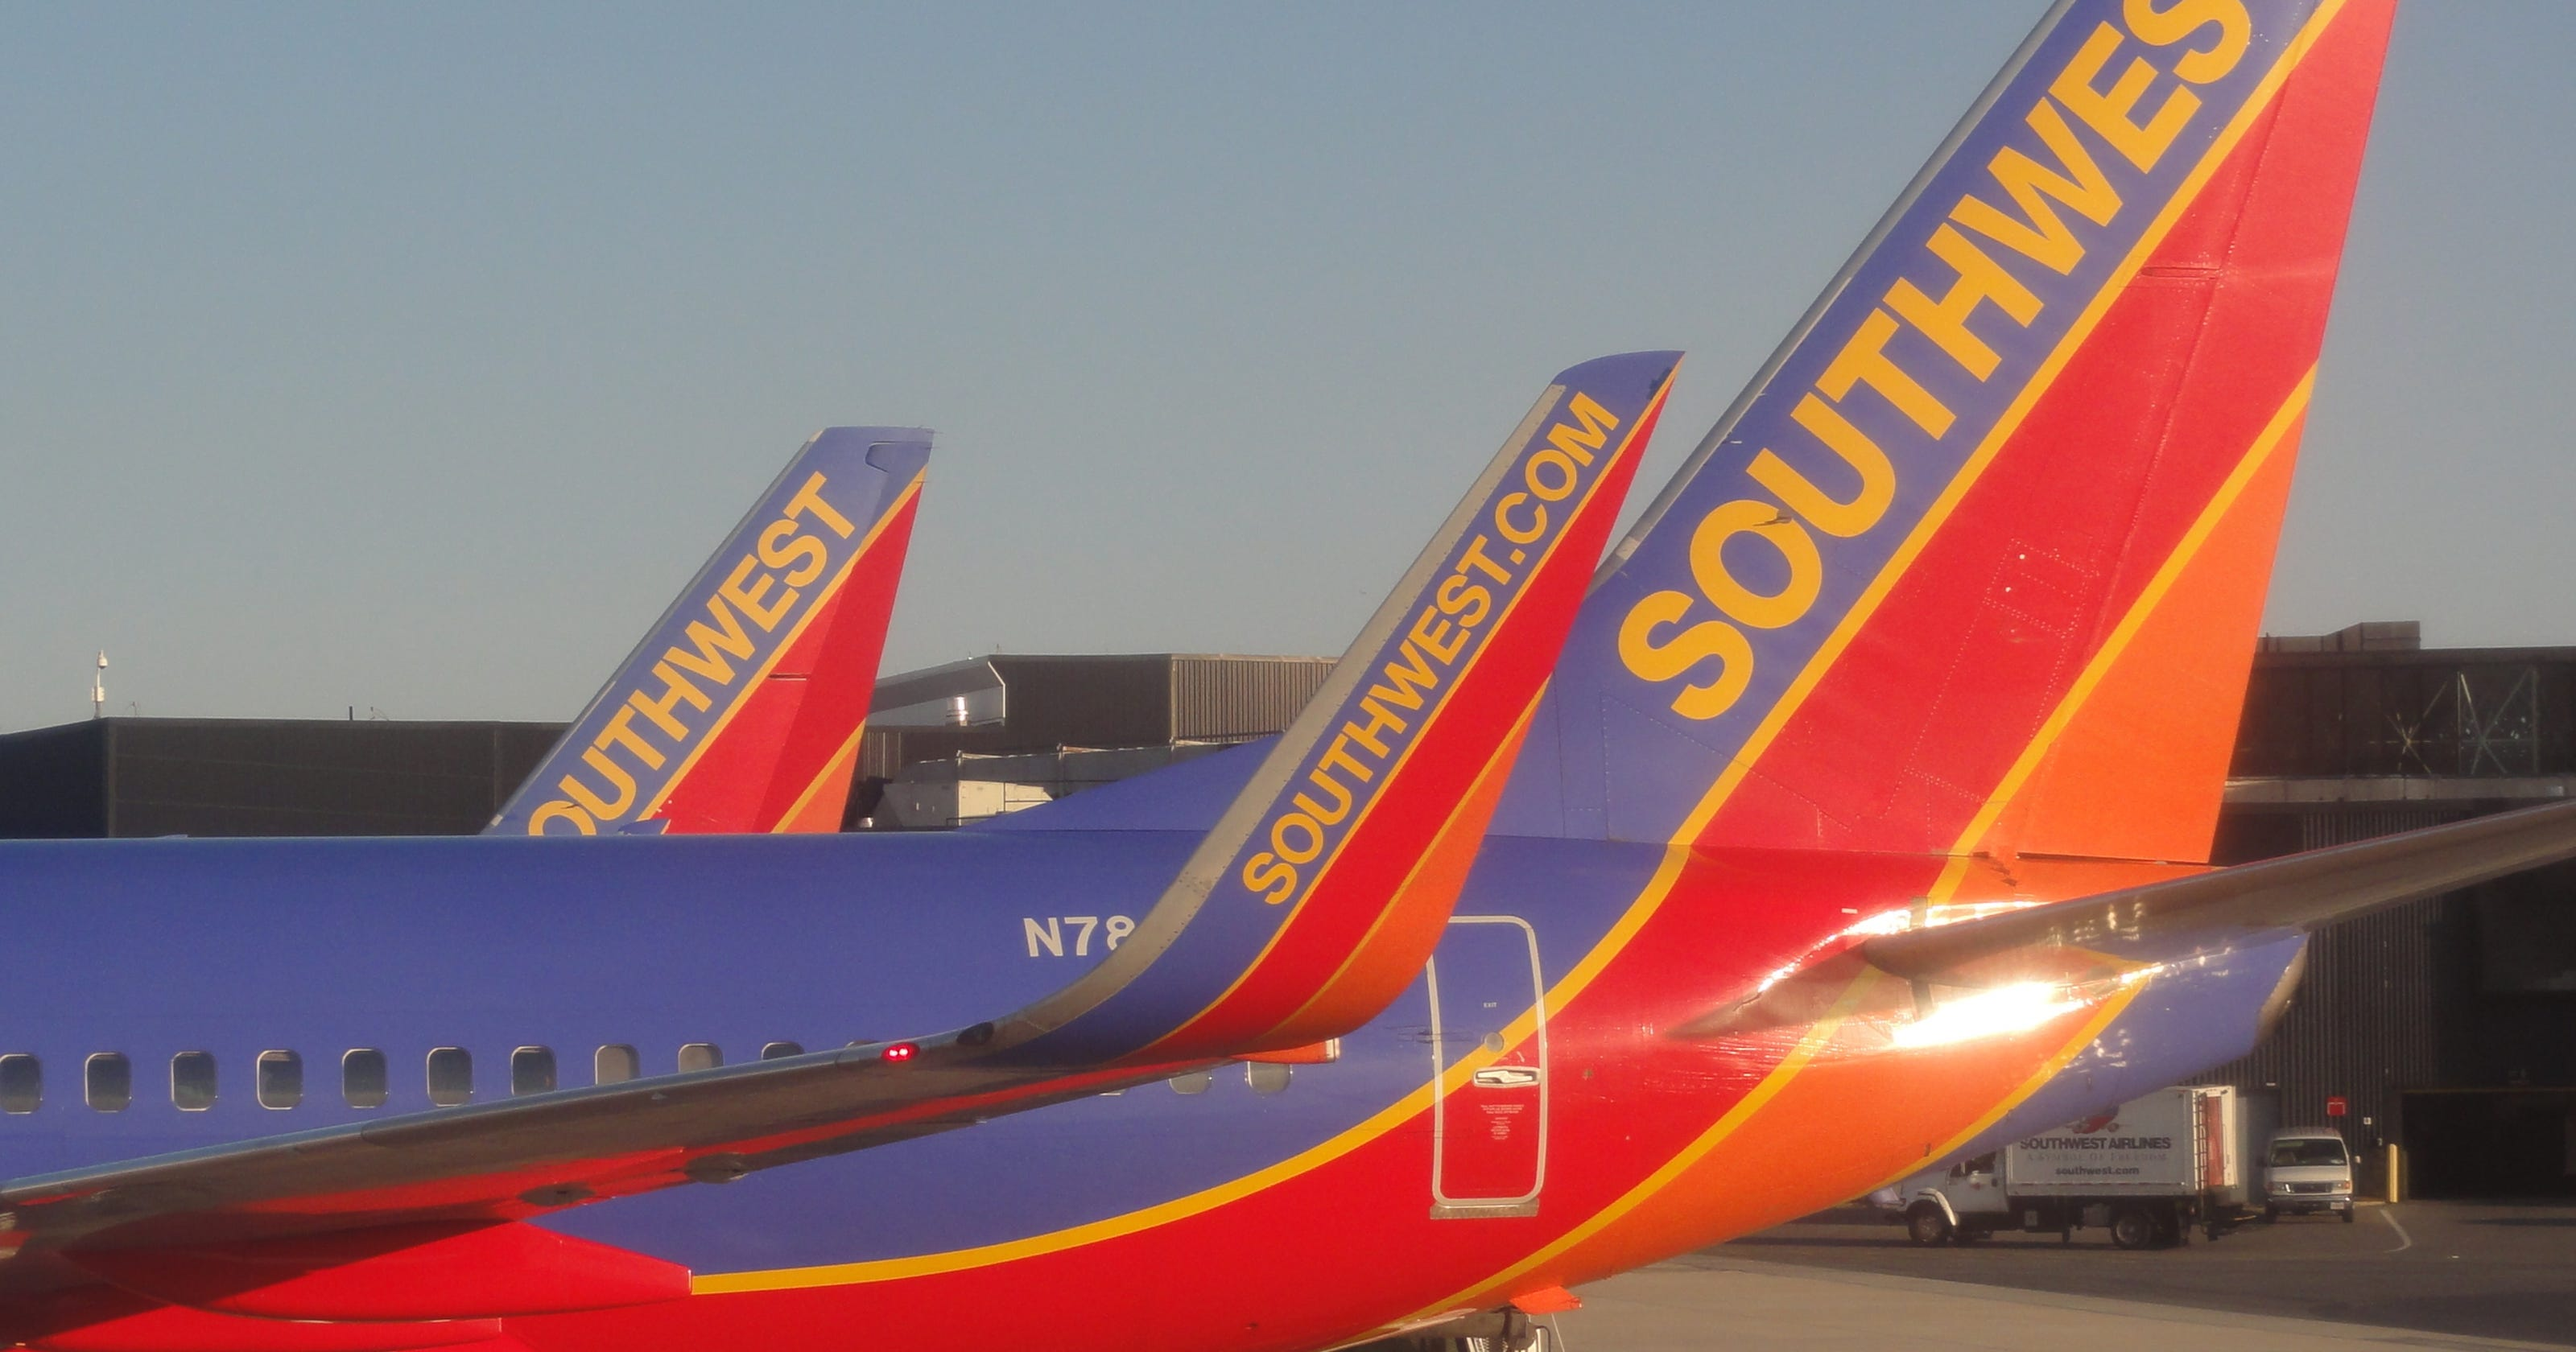 This is not a one-time pass, but instead allows a companion to fly free with you EVERY TIME you fly Southwest. Yes, you are hearing me correctly: EVERY SINGLE TIME you fly Southwest. Theoretically, I could fly Southwest every day and my companion would fly free with me each and every time. 2.